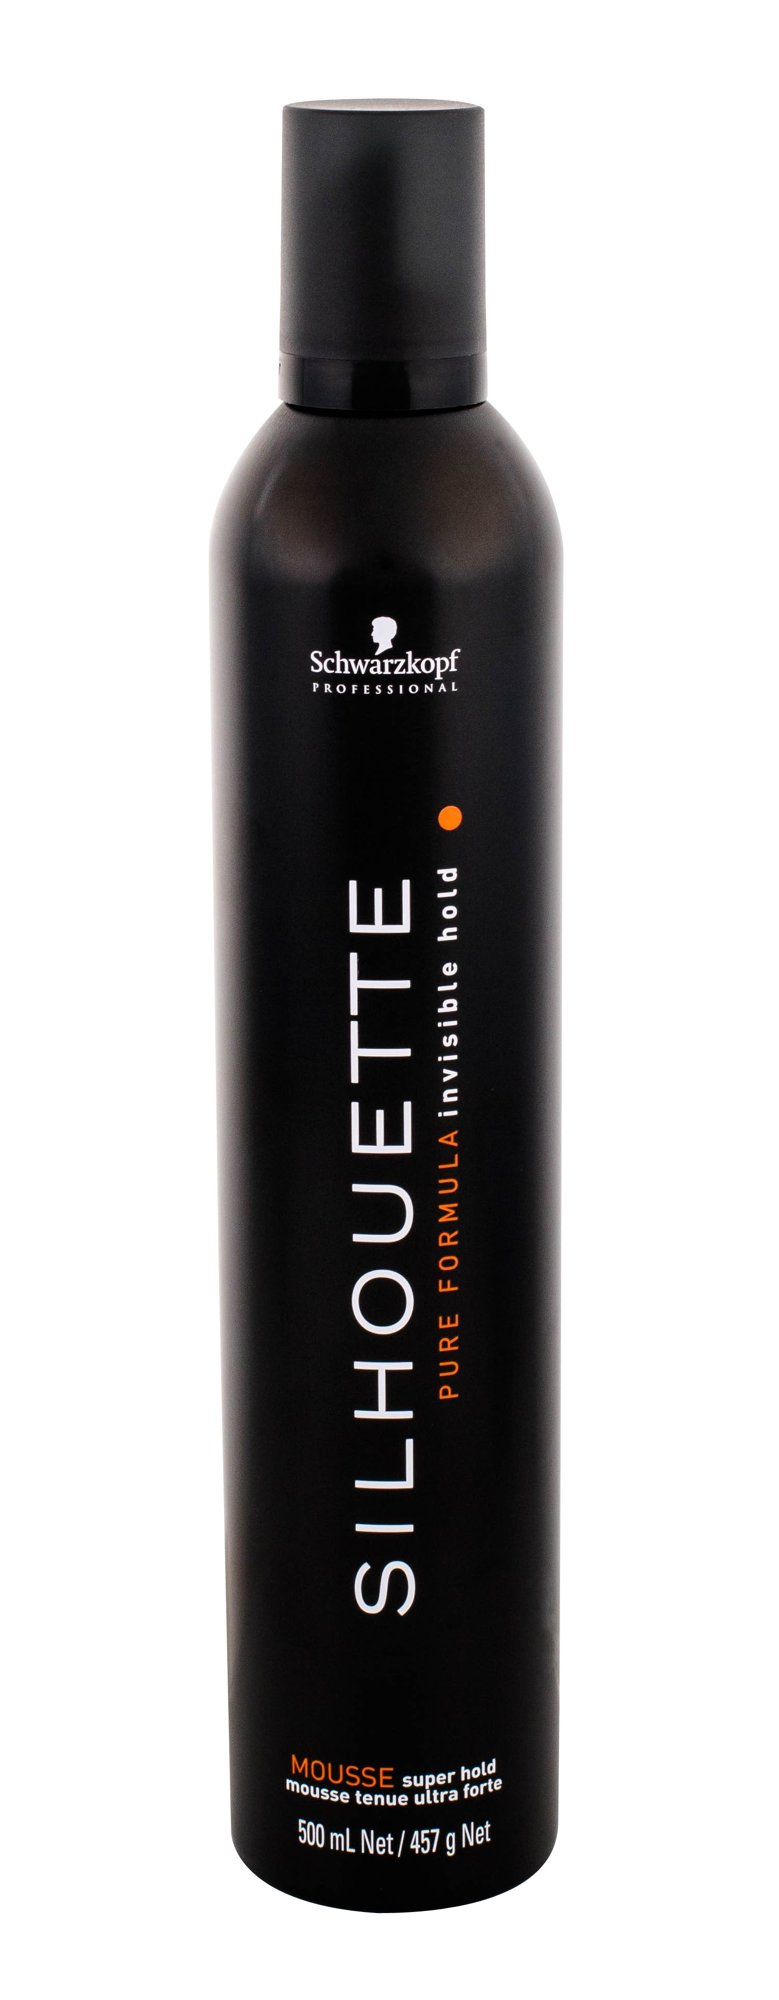 Schwarzkopf Silhouette Super Hold Mousse Cosmetic 500ml